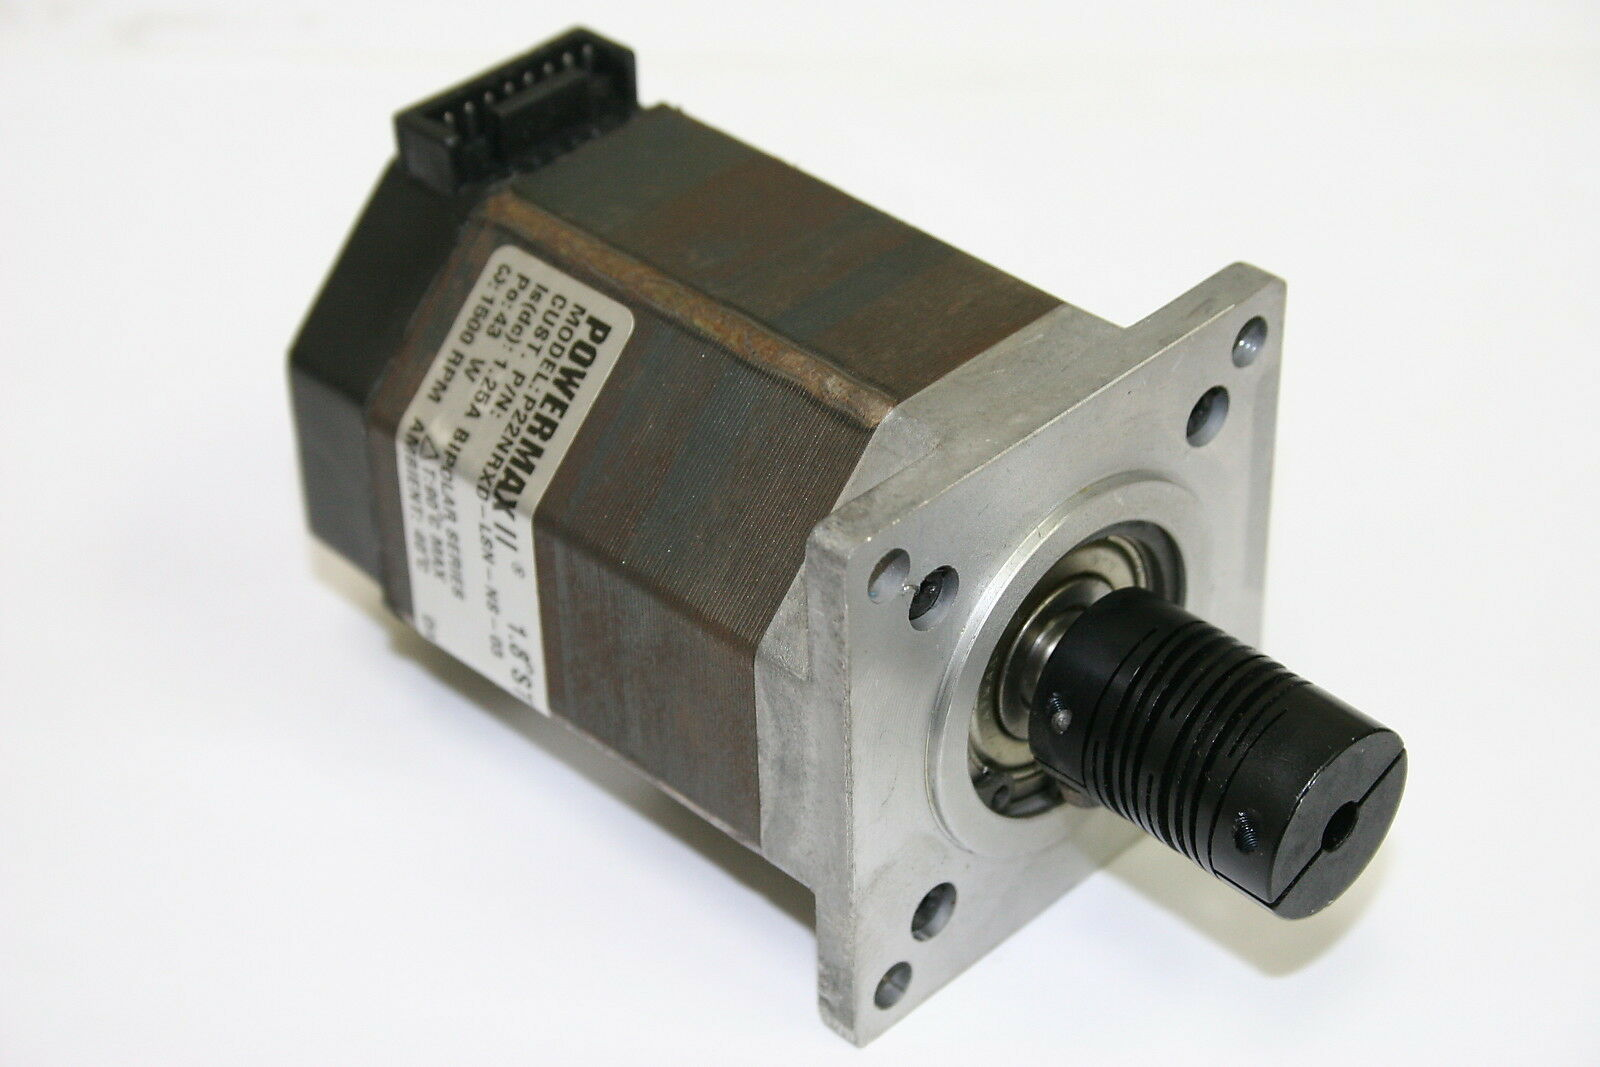 Pacific scientific p22nrxd lsn ns 03 powermax ii 1 8 for Pacific scientific stepper motor